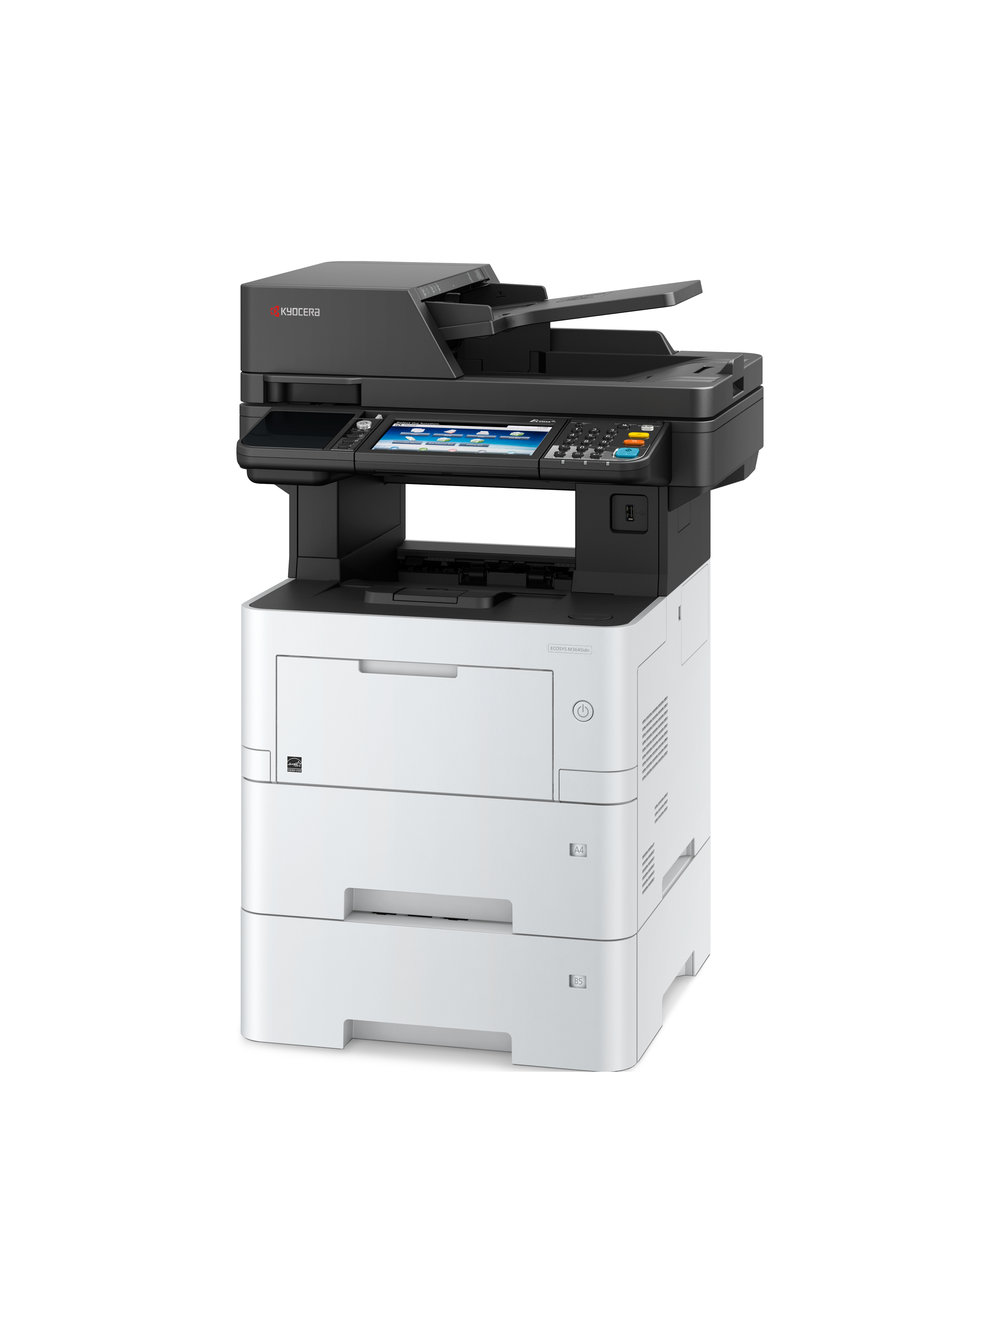 The Ecosys M3645idn with optional 500 sheet cassette